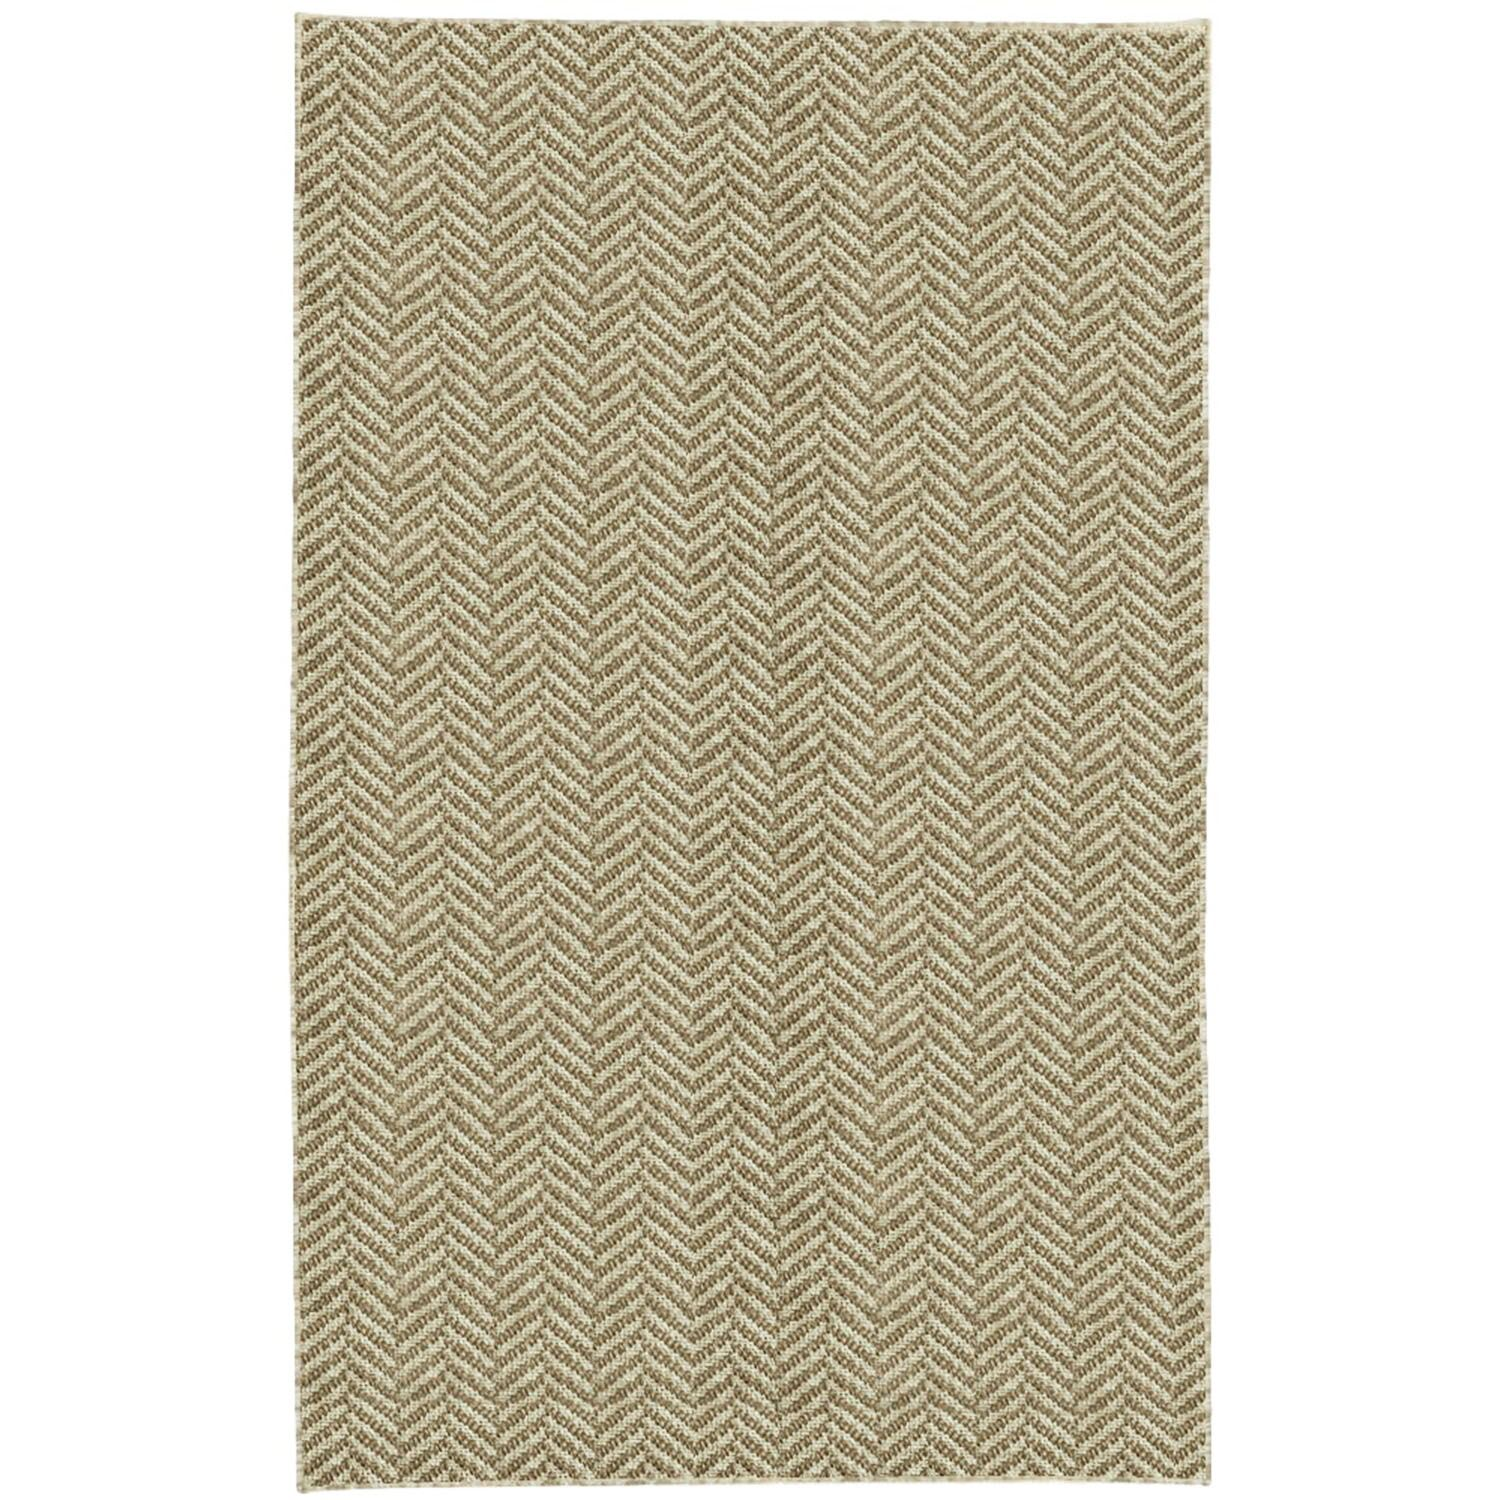 Paige Gray Area Rug Rug Size: 9' x 12'